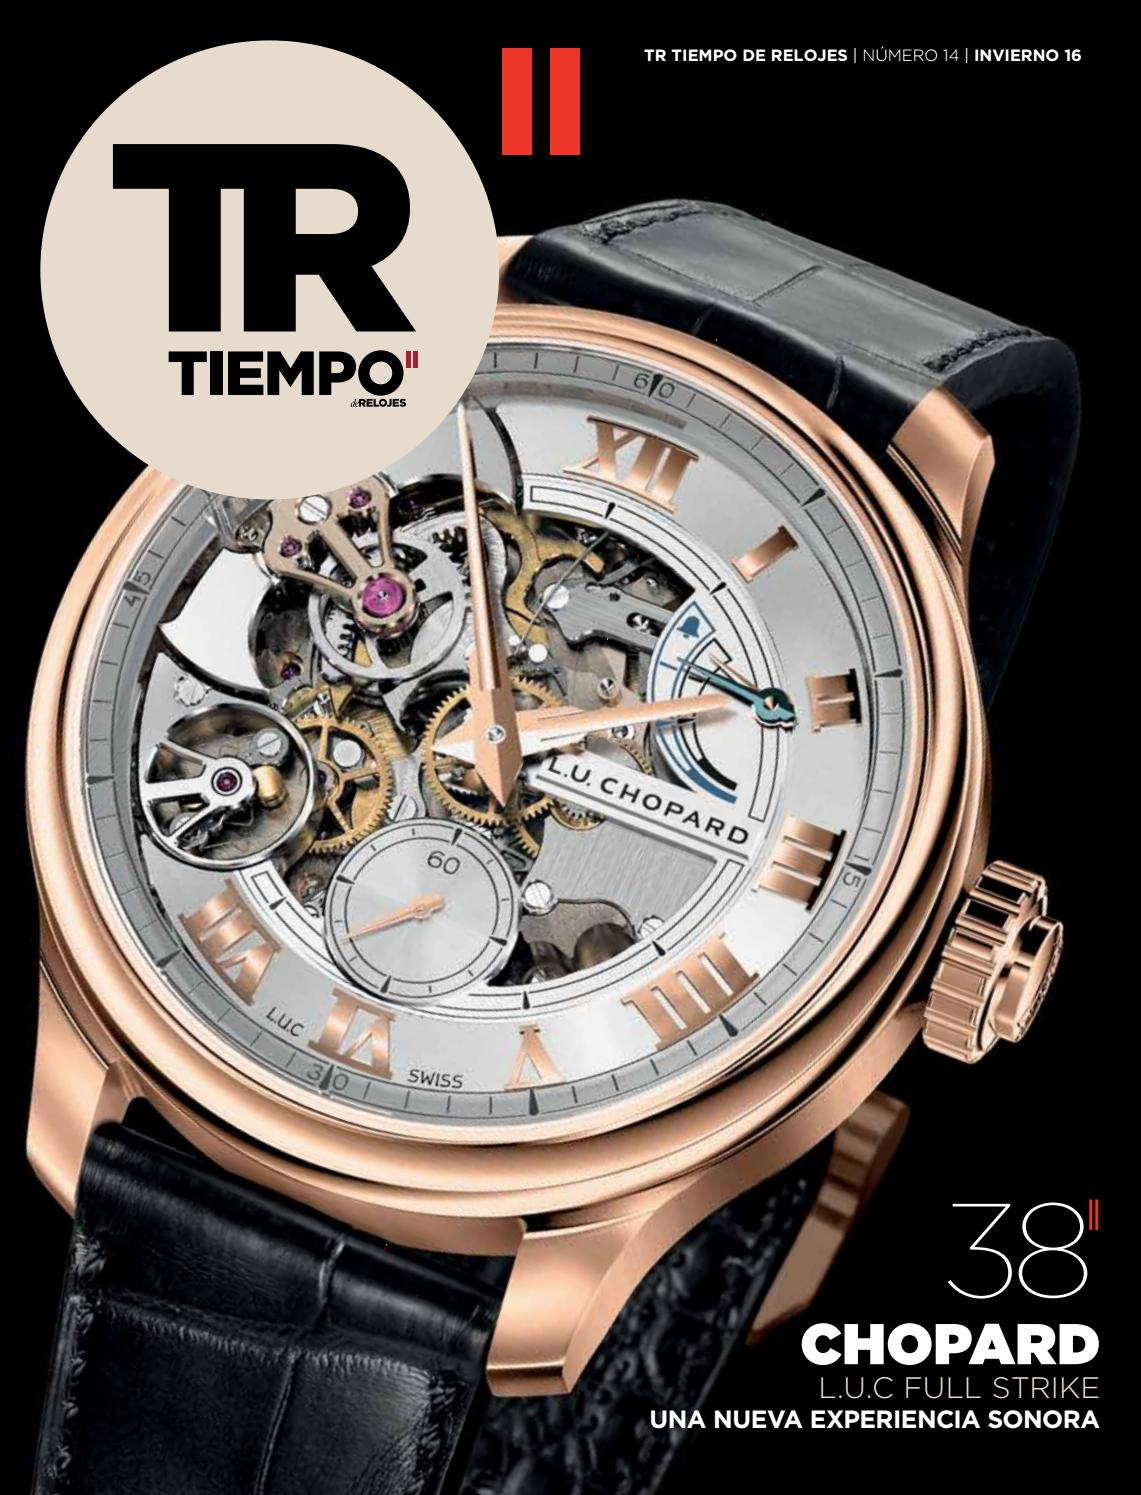 cc782194c8c0 Tr tiempoderelojes numero 14 by Ed-Tourbillon.Spain - issuu